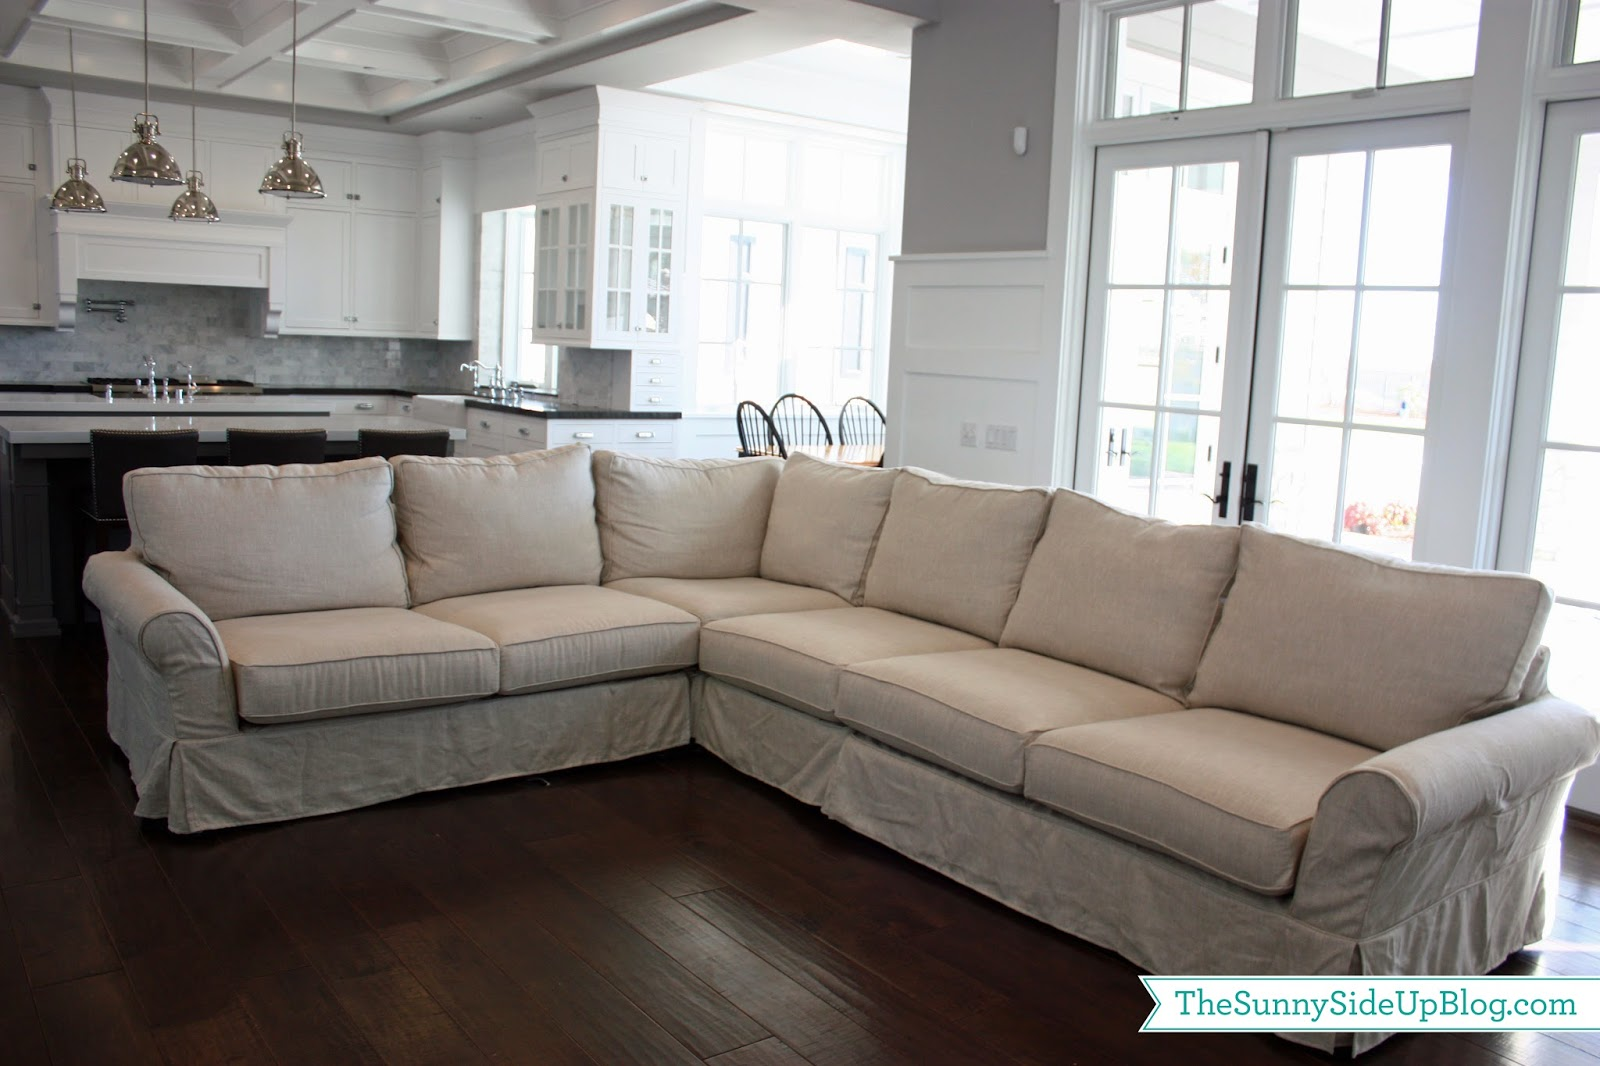 Family room decor update the sunny side up blog for Family lounge furniture